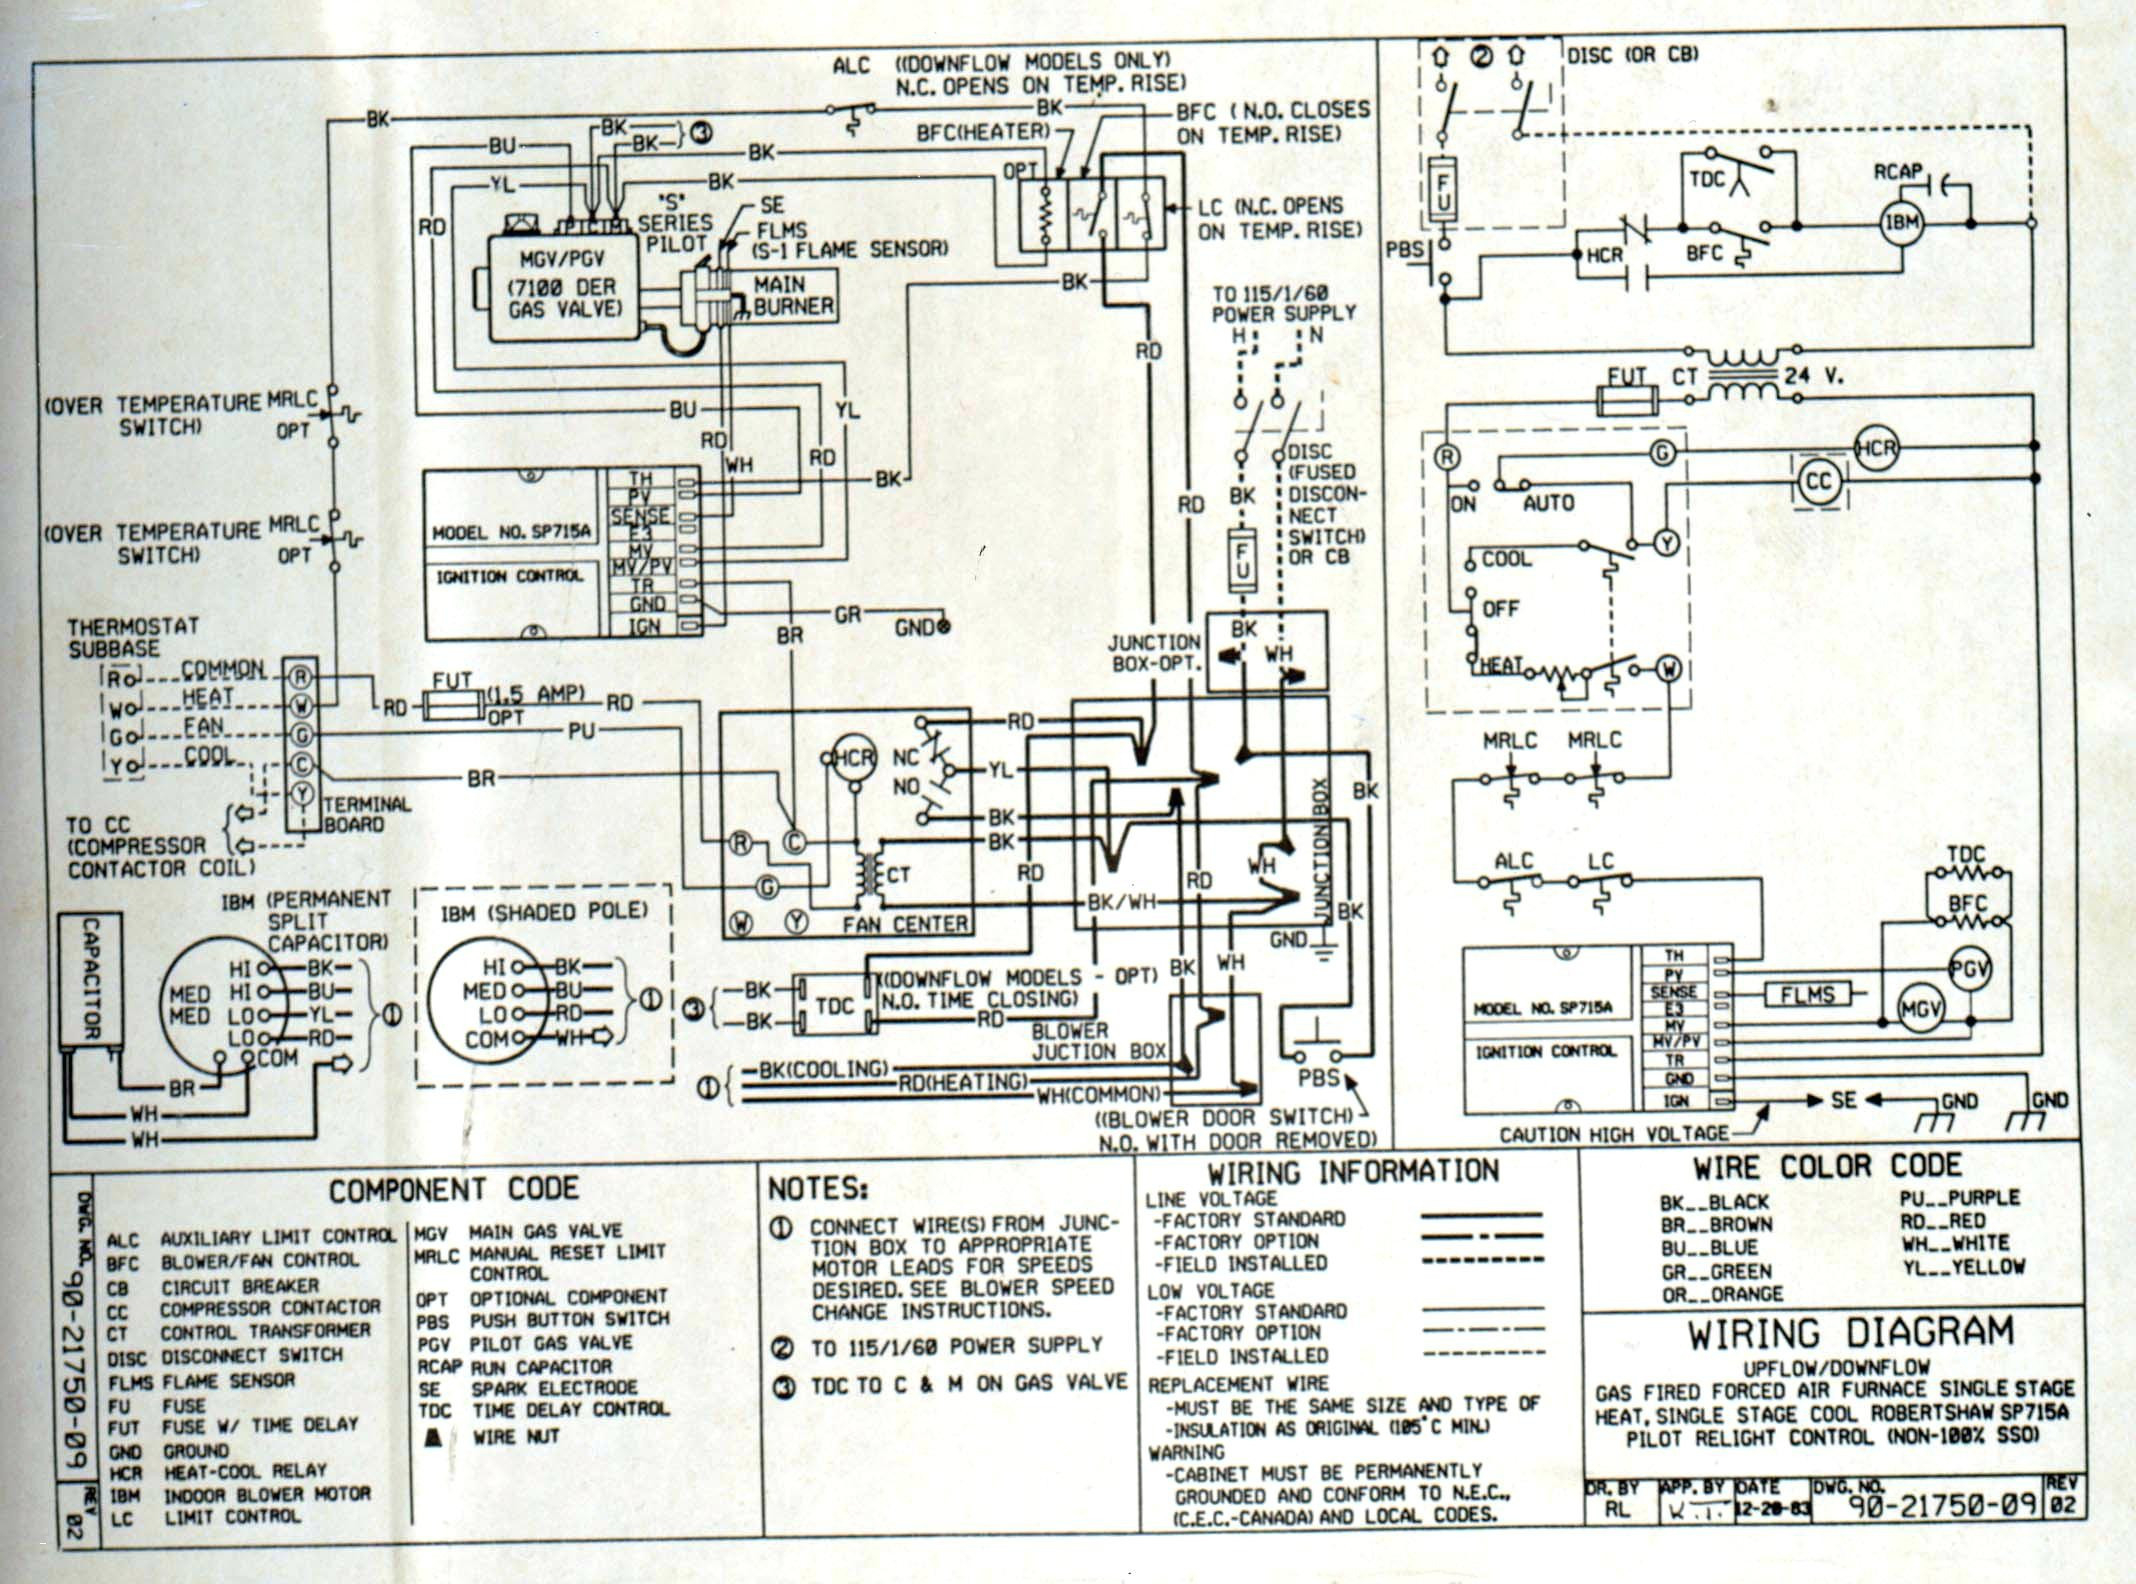 goodman ac unit wiring diagram Download-Wiring Diagram For Ac Unit Thermostat New Wiring A Ac Thermostat Diagram New Goodman Air Handler Wiring 2-t